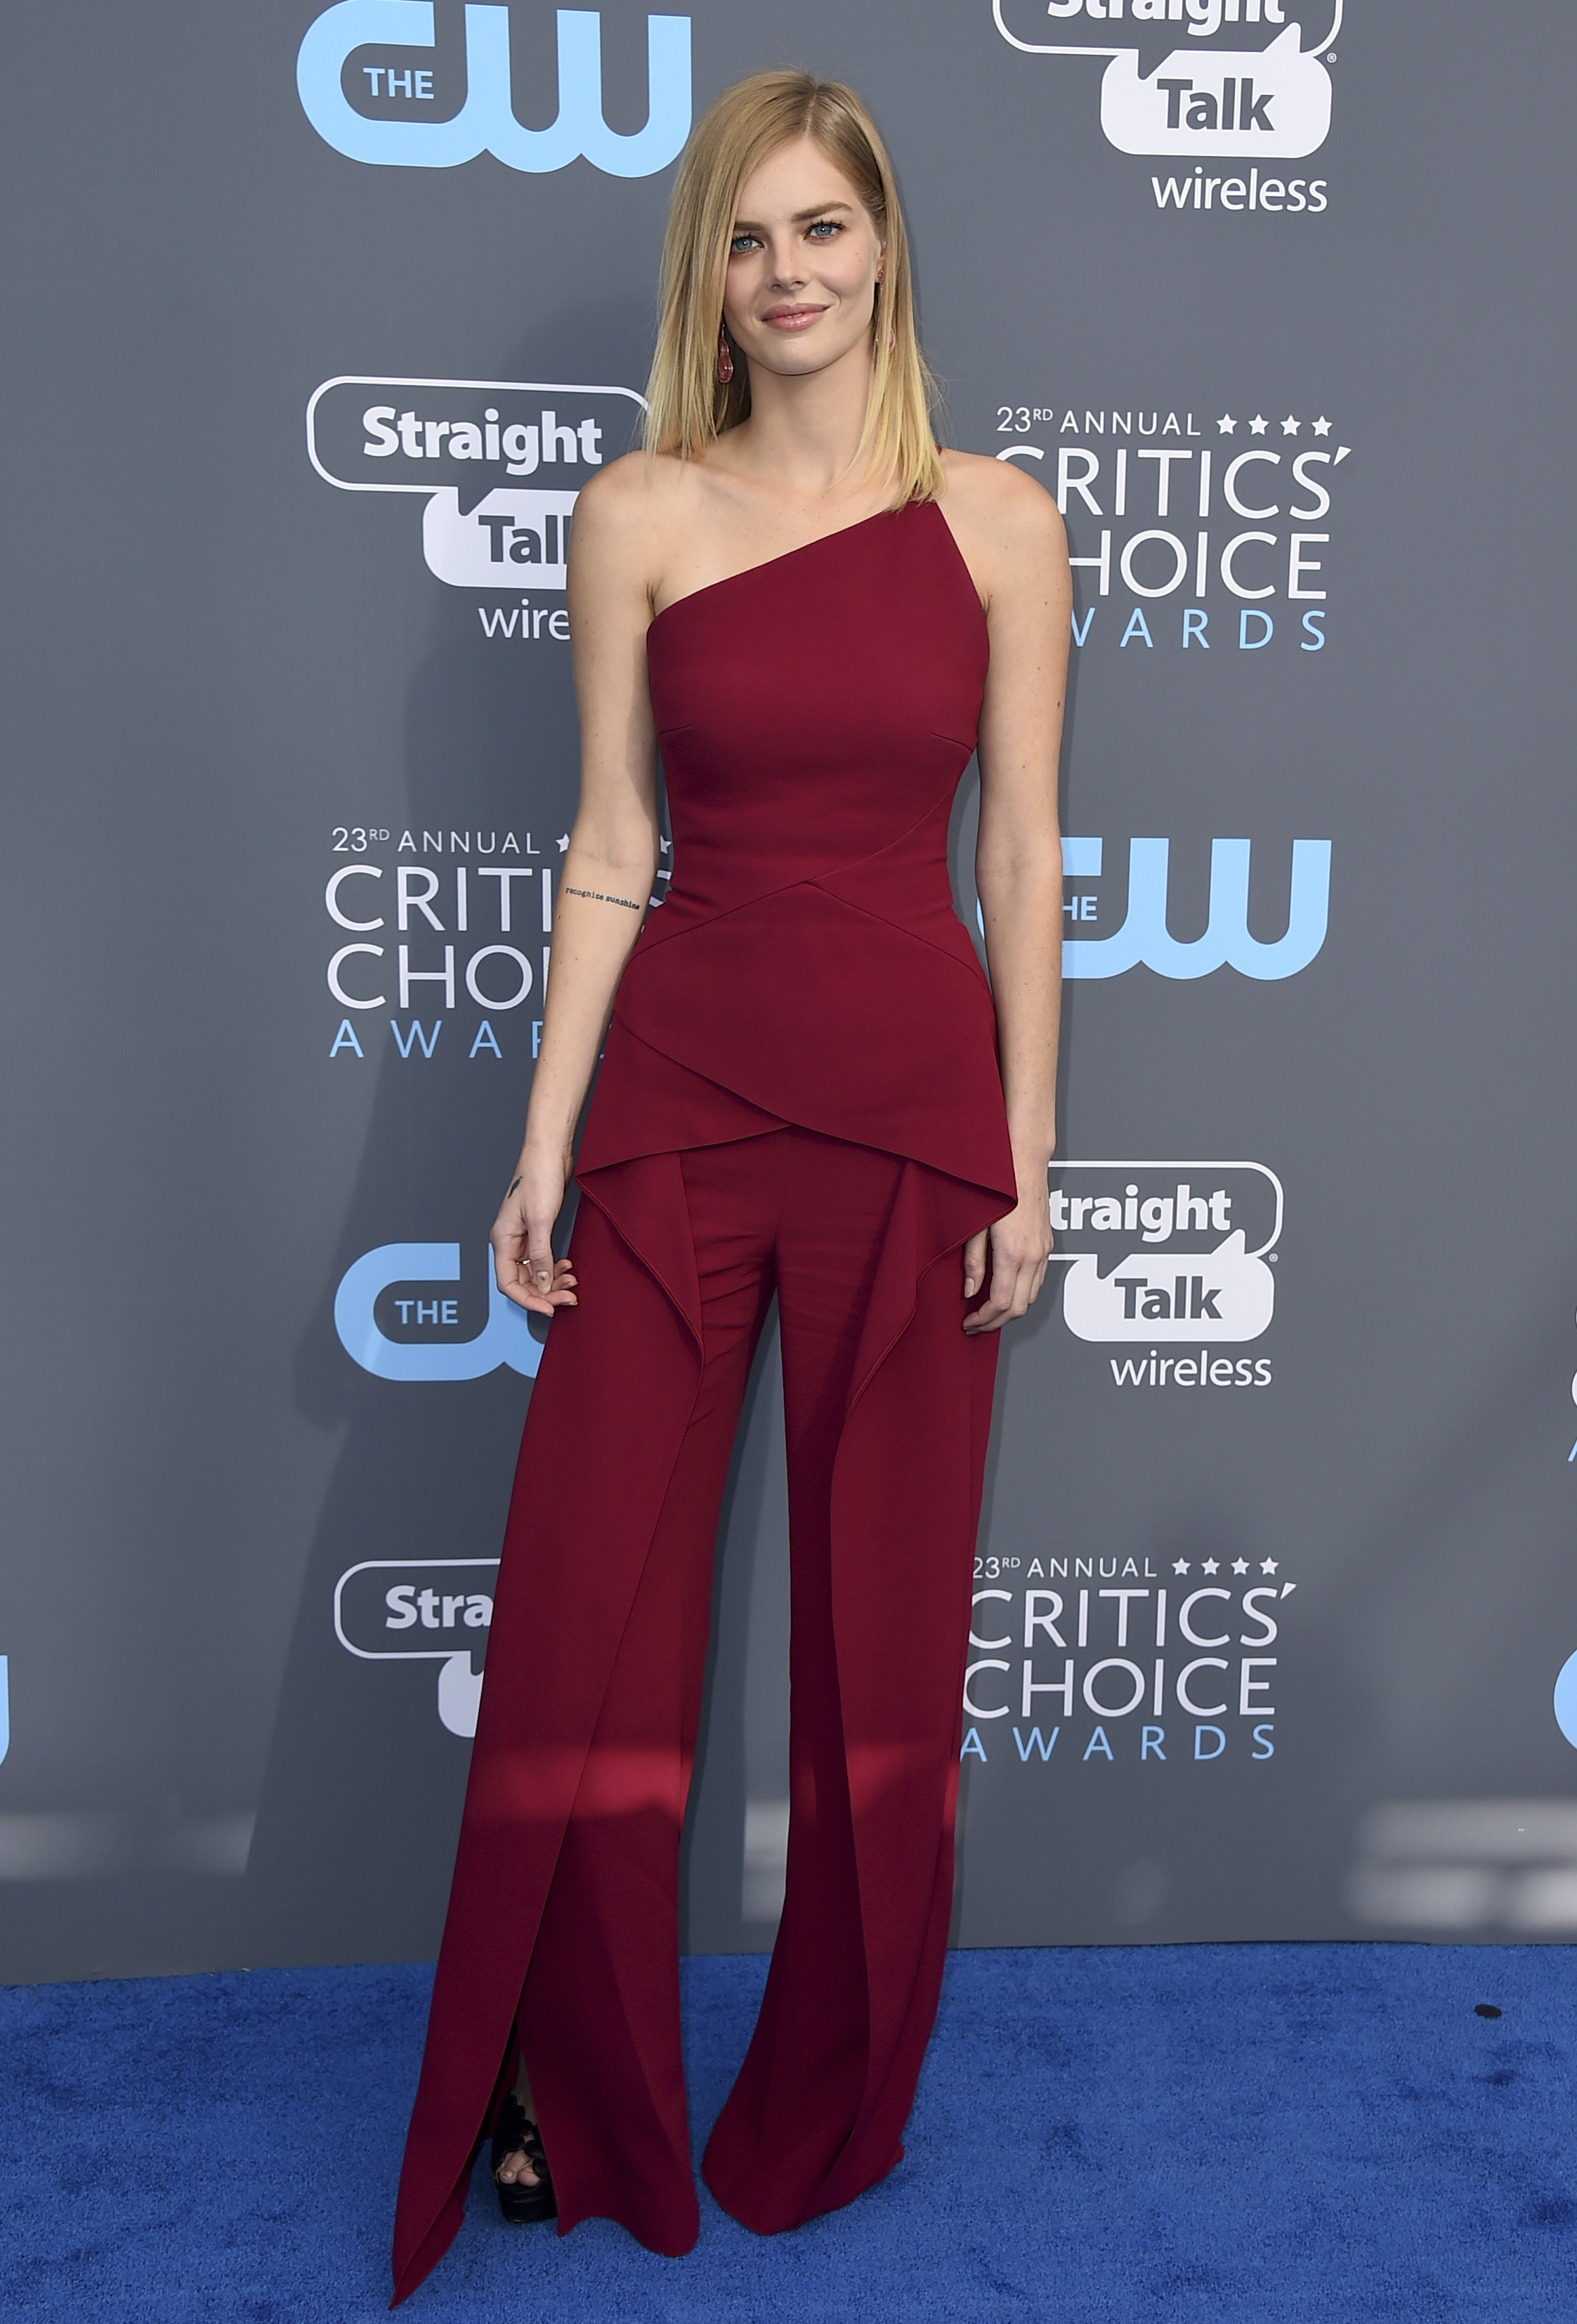 <div class='meta'><div class='origin-logo' data-origin='AP'></div><span class='caption-text' data-credit='Jordan Strauss/Invision/AP'>Samara Weaving arrives at the 23rd annual Critics' Choice Awards at the Barker Hangar on Thursday, Jan. 11, 2018, in Santa Monica, Calif.</span></div>